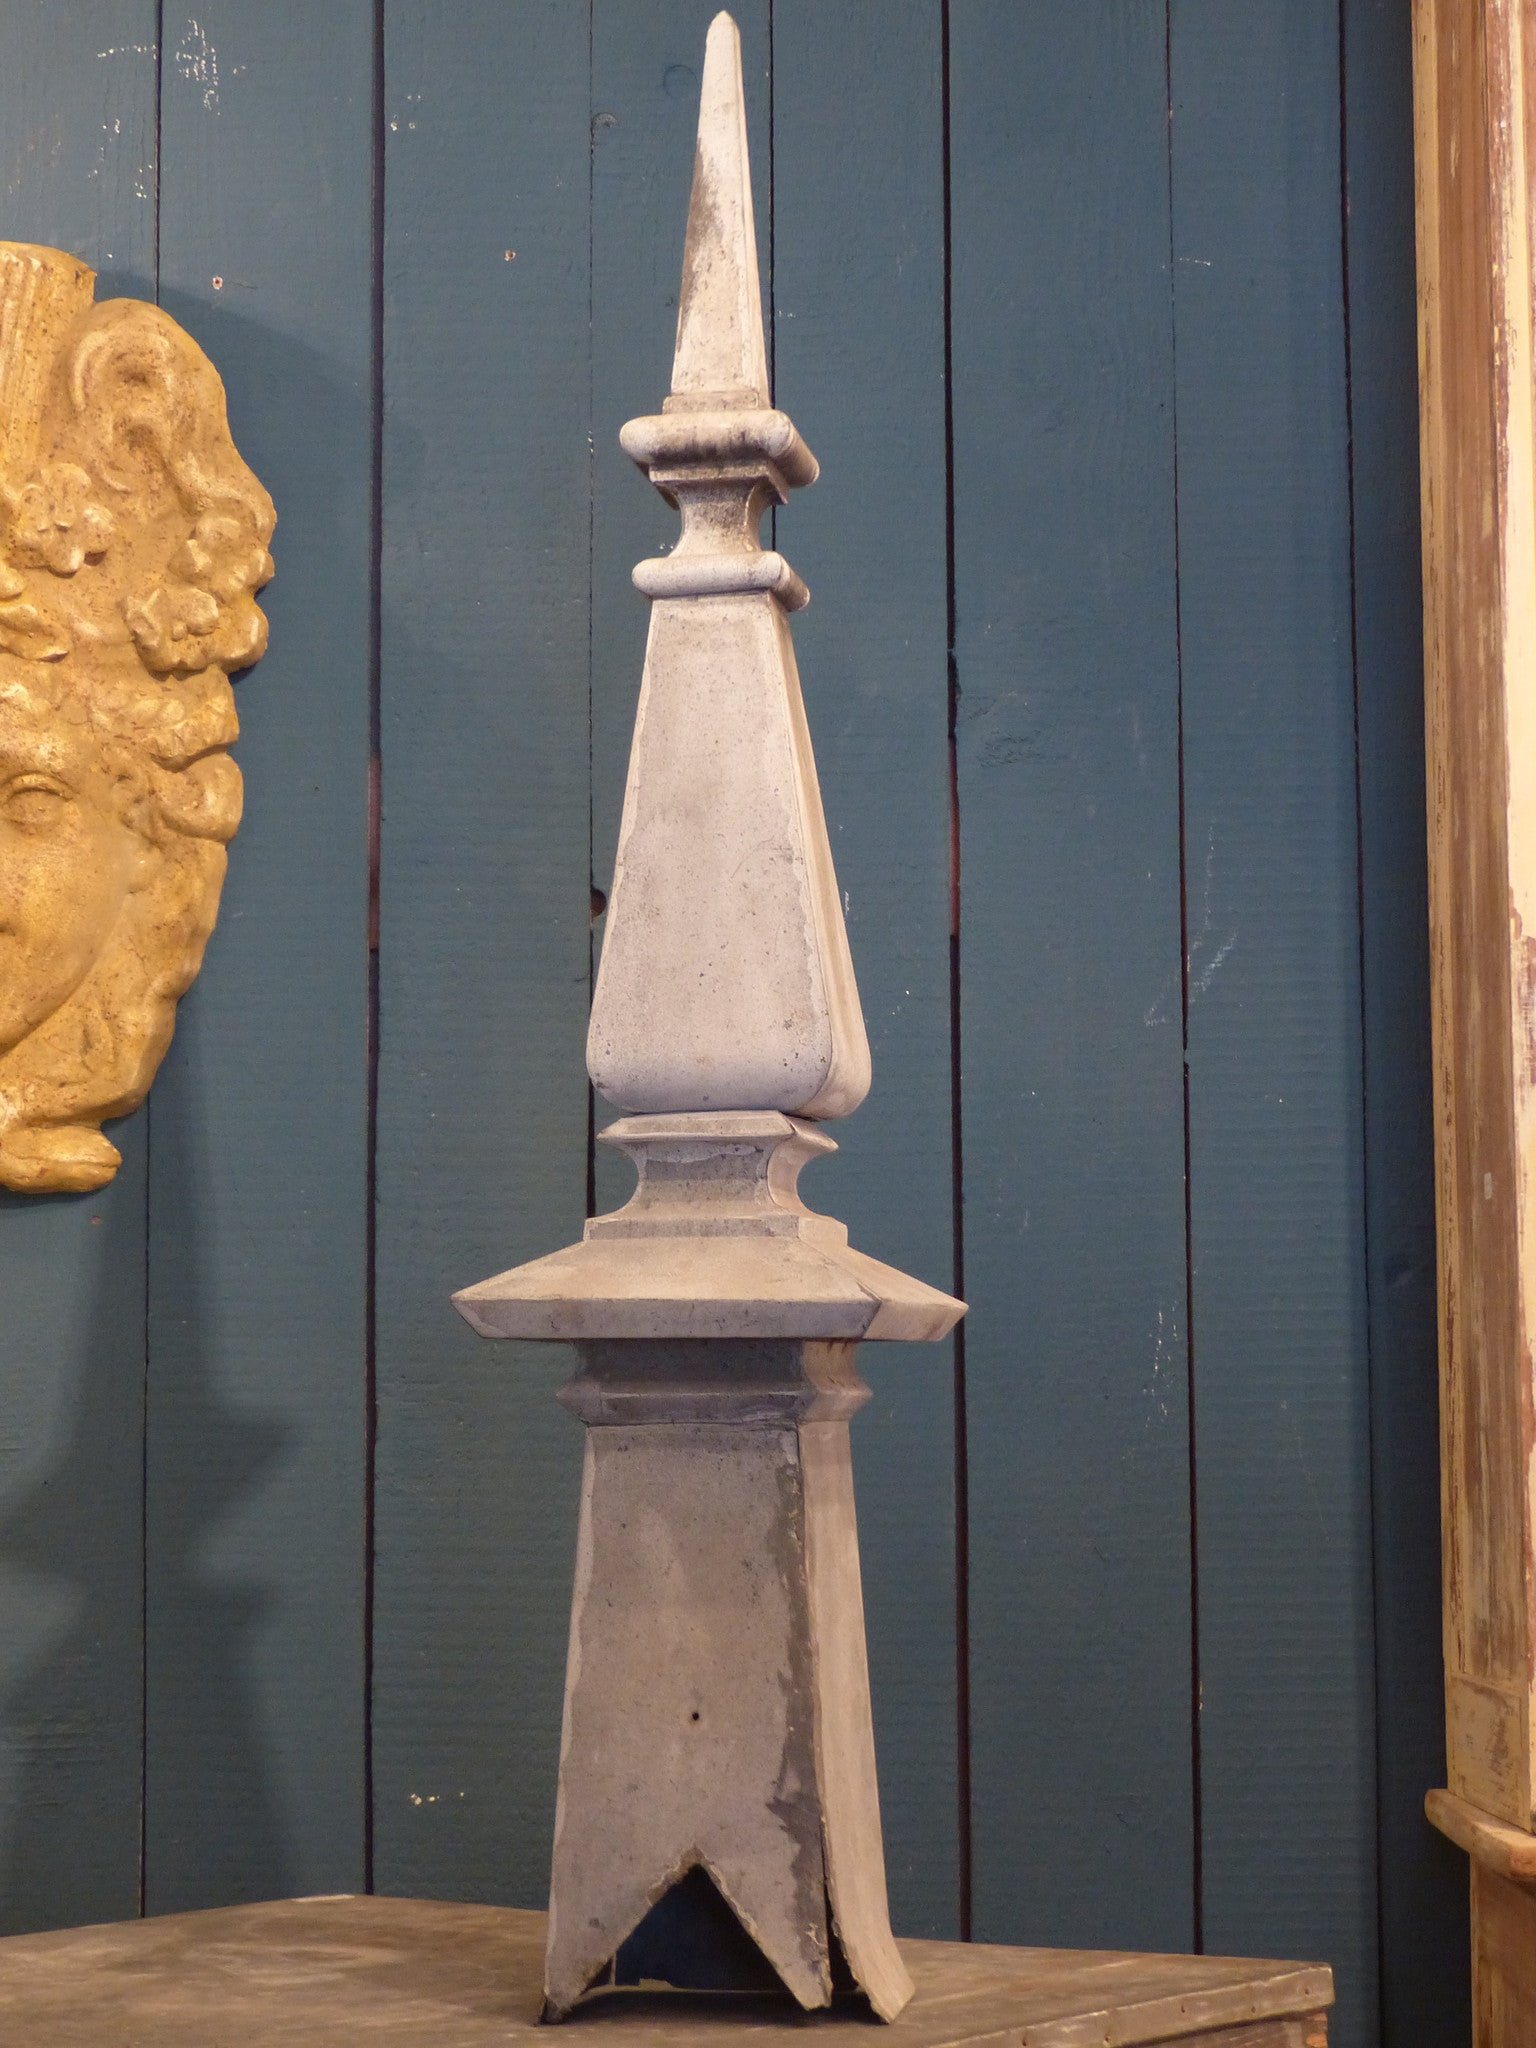 19th century French finial